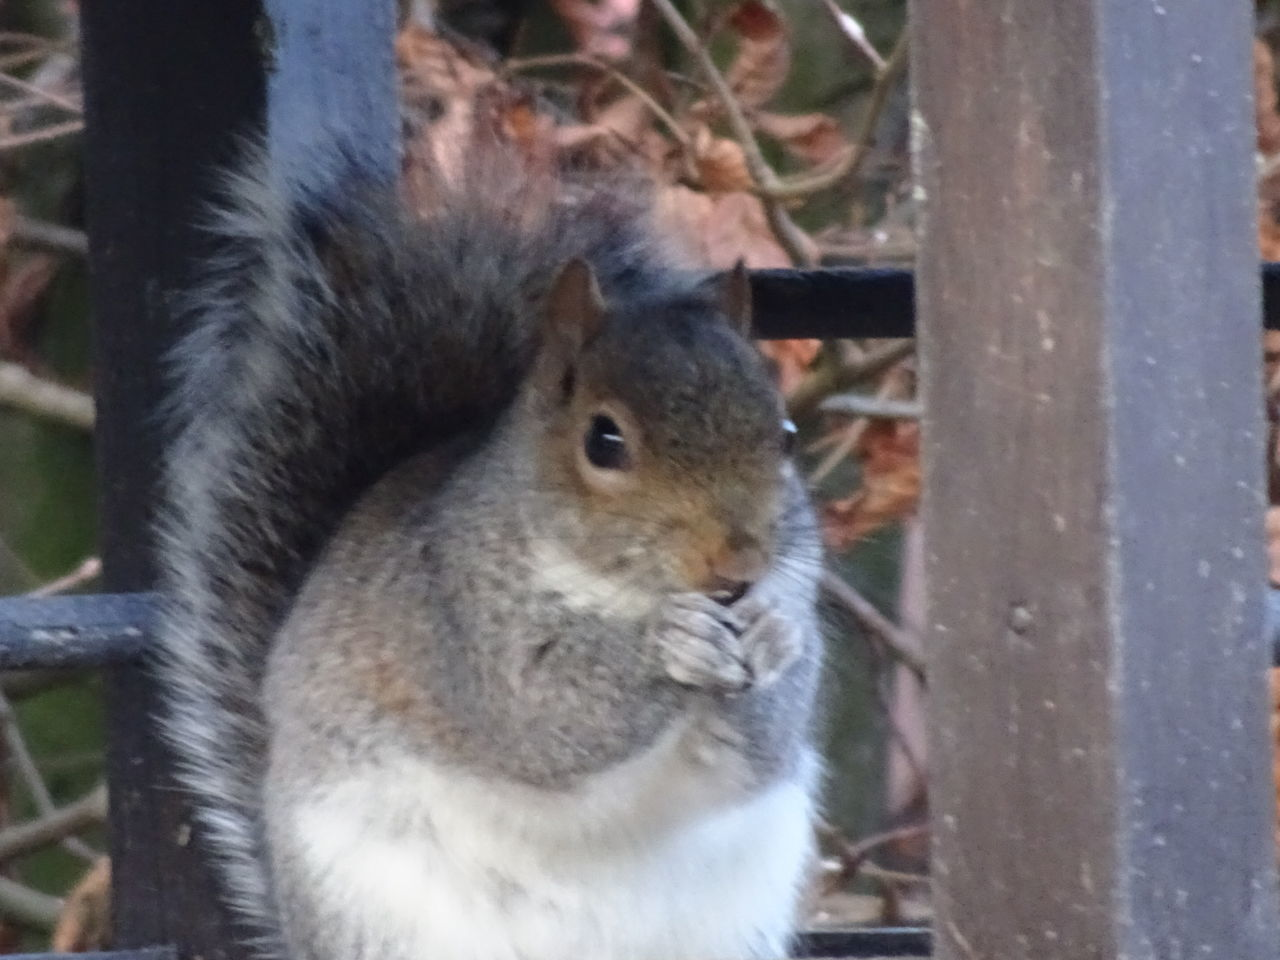 animal themes, one animal, mammal, squirrel, rodent, animals in the wild, day, no people, close-up, focus on foreground, outdoors, animal wildlife, nature, domestic animals, eating, portrait